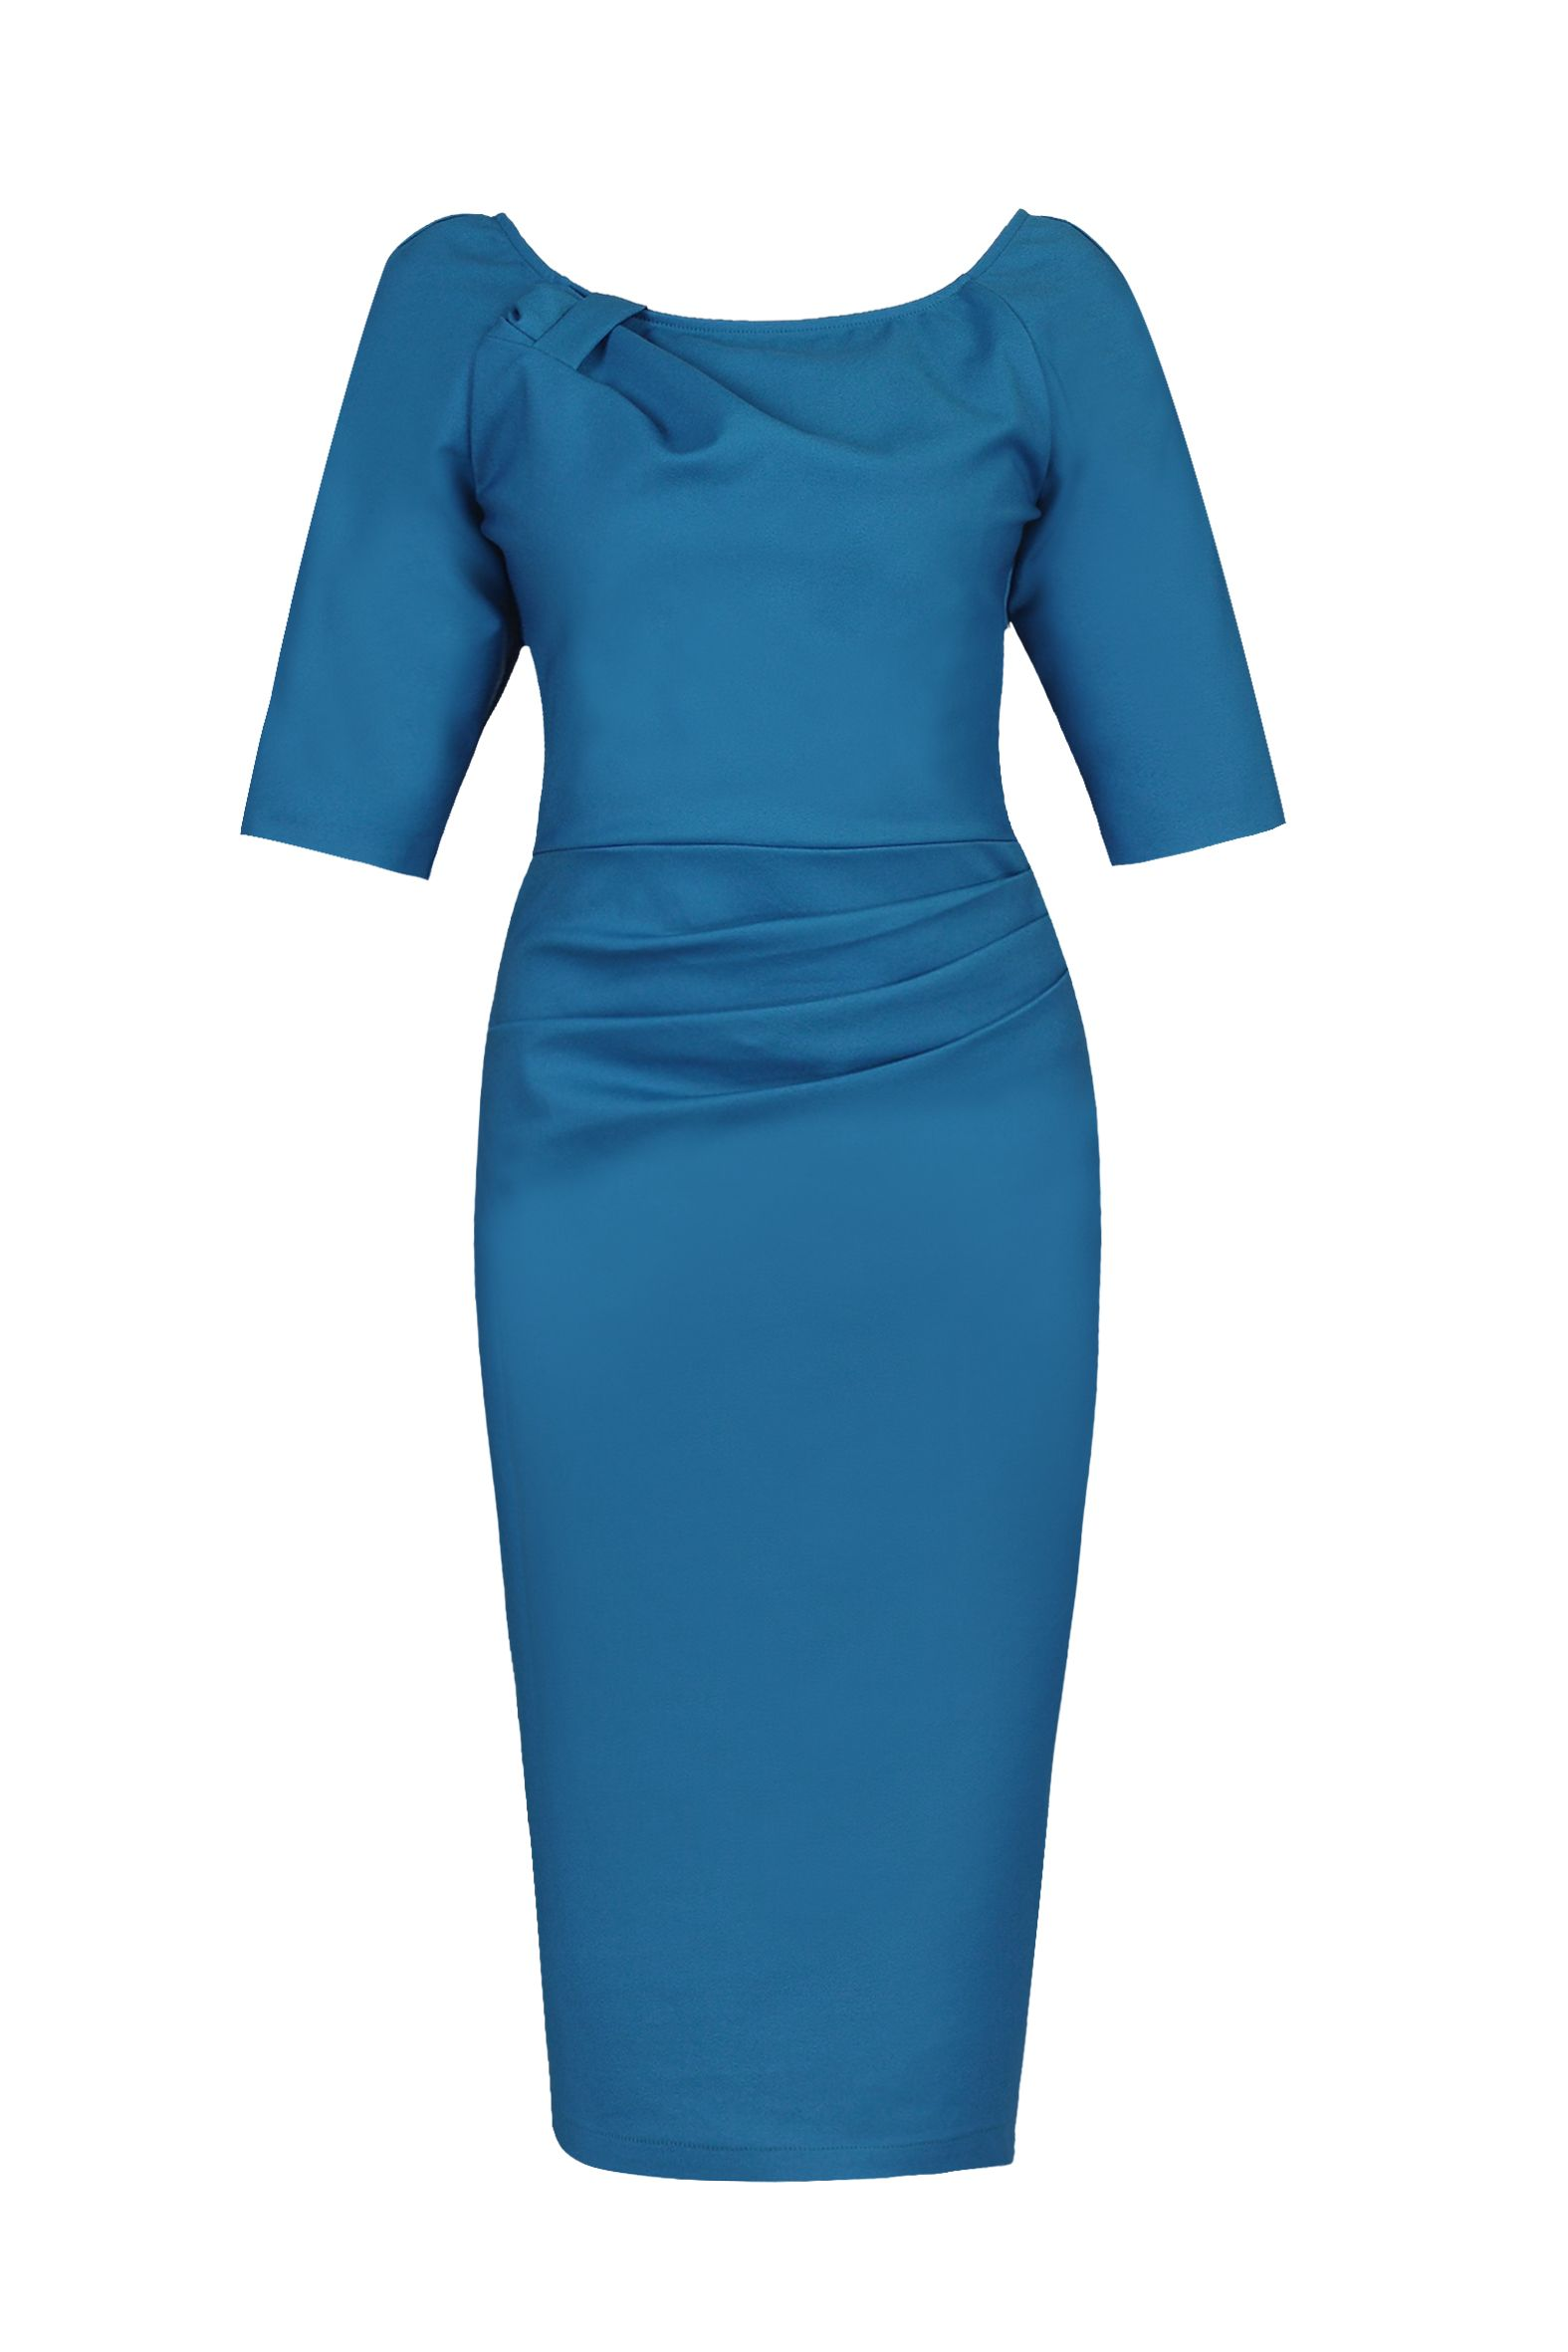 Jolie Moi 1/2 Sleeve Ruched Wiggle Dress, Teal